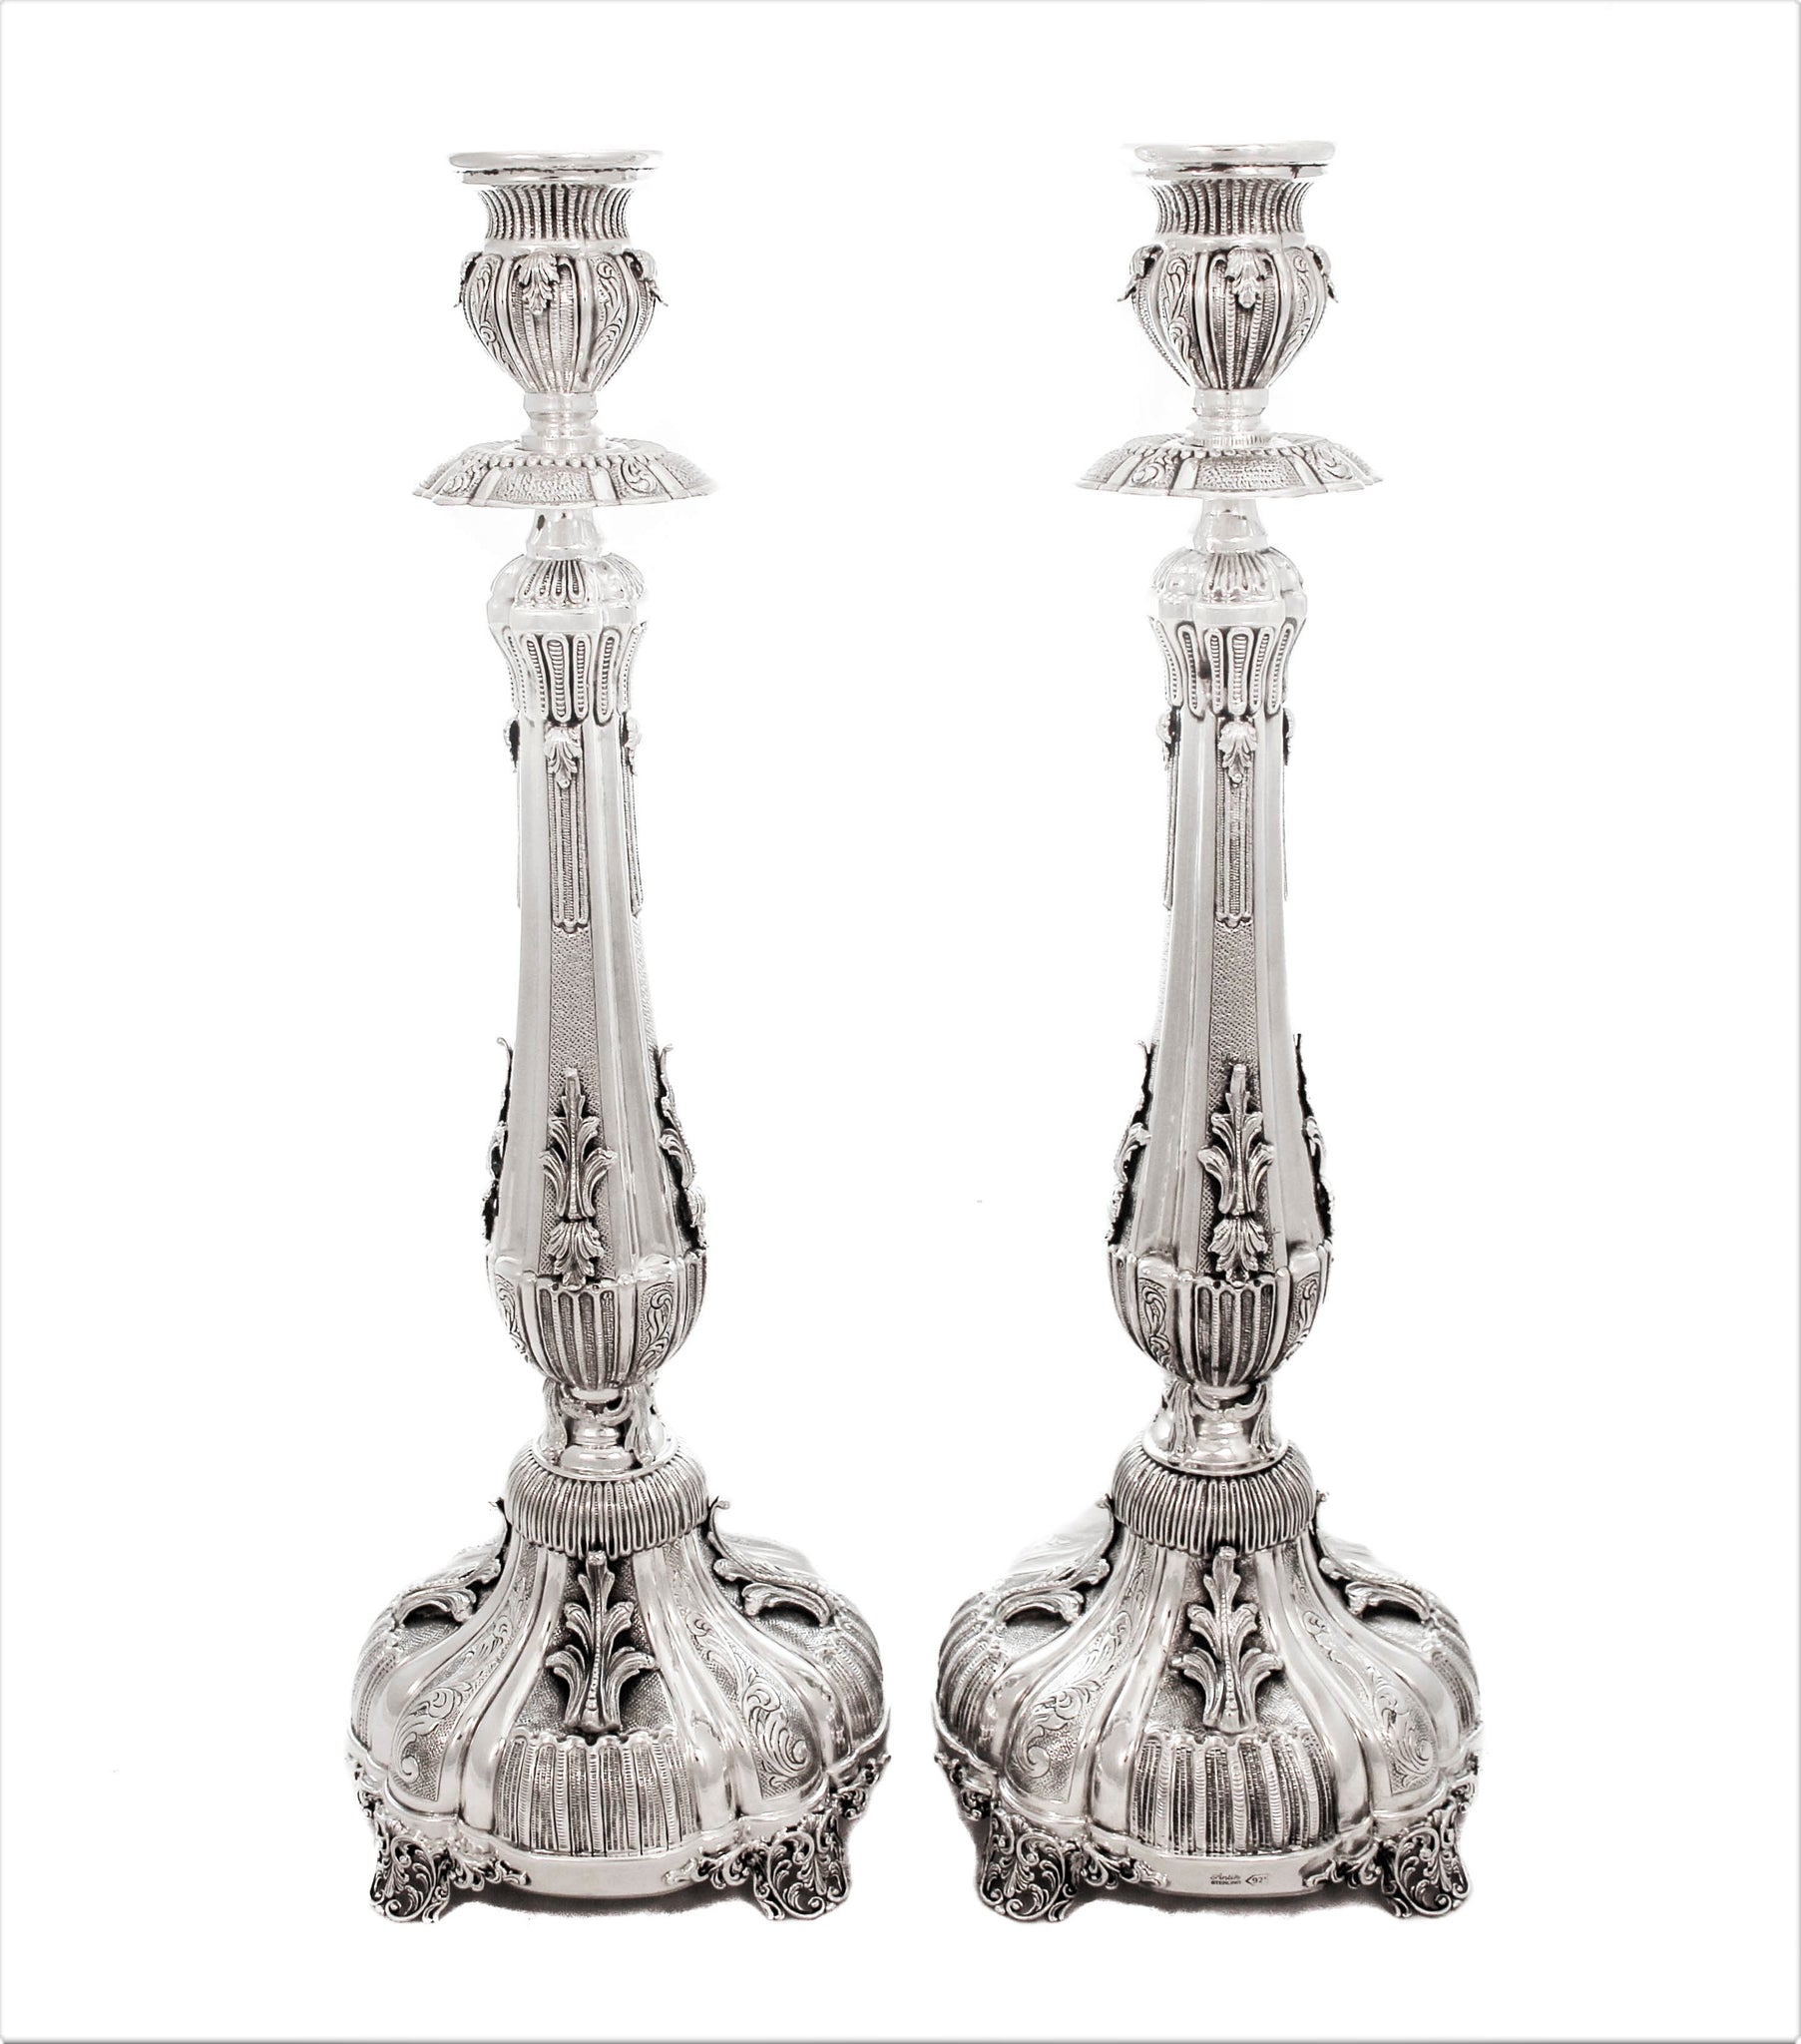 FINE 925 STERLING SILVER HAND CHASED GARLAND DESIGN LEAF APPLIQUE CANDLESTICKS